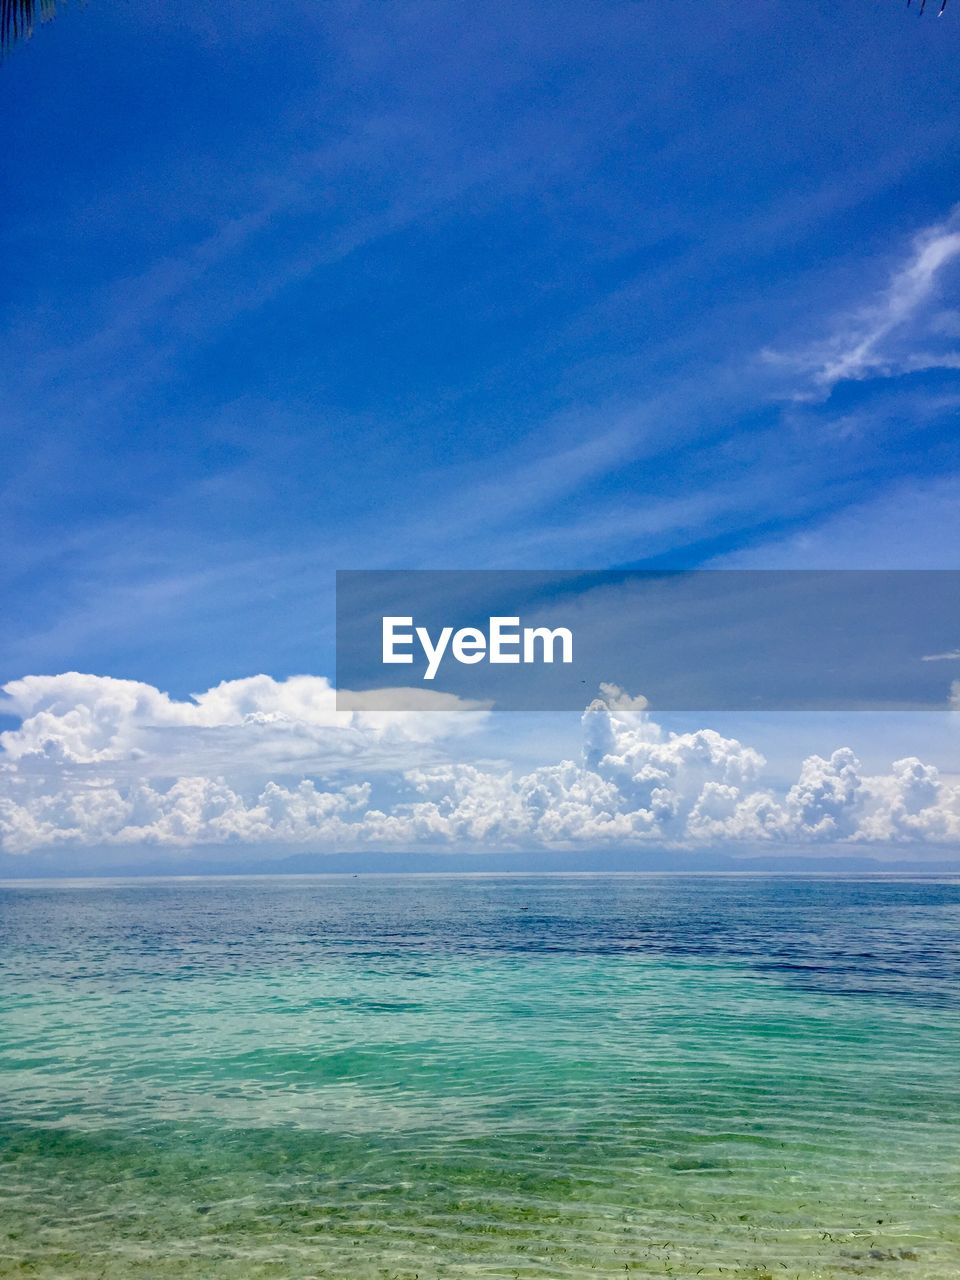 sky, cloud - sky, scenics - nature, sea, beauty in nature, tranquility, tranquil scene, horizon, blue, horizon over water, water, idyllic, nature, day, no people, land, waterfront, outdoors, non-urban scene, turquoise colored